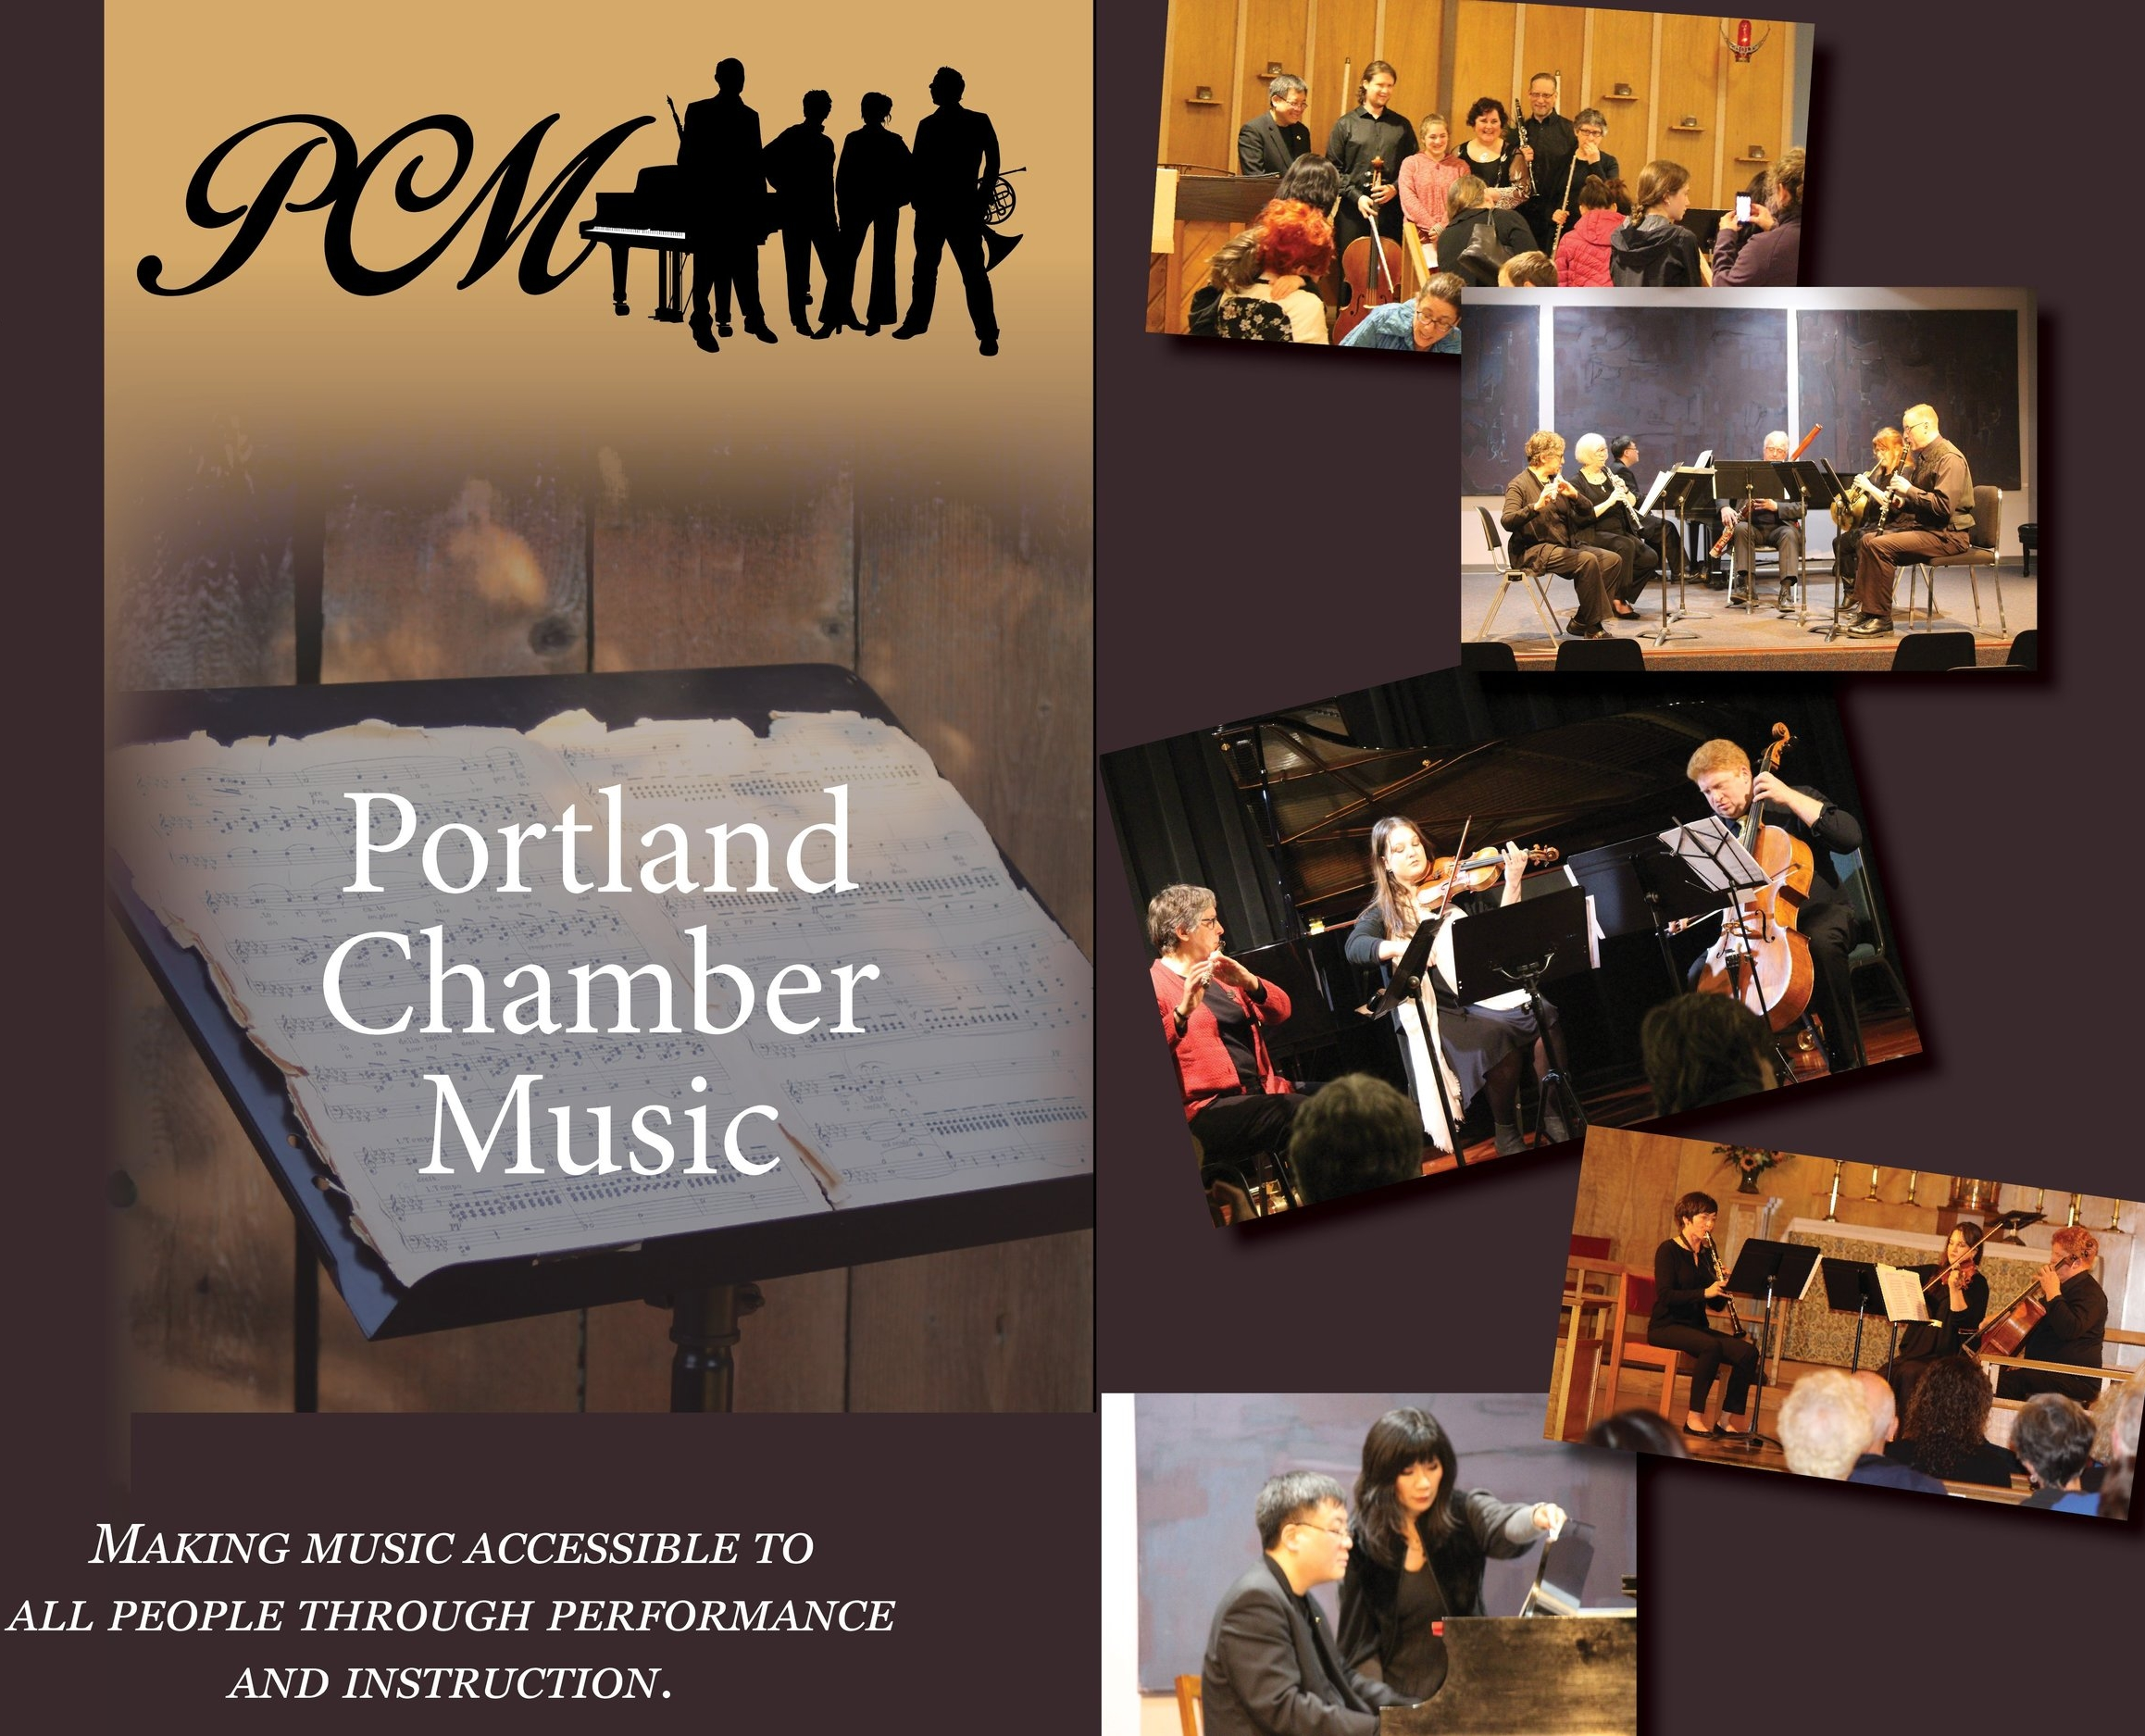 - To be part of our Program Guide for Fall Season 2019, please fill out the form and email your artwork to portlandchambermusic@gmail.com by September 16, 2019If you have any additional questions, please contact Executive Artistic Director Anya Kalina or President Kimberly Sieffert at portlandchambermusic@gmail.comThank You!